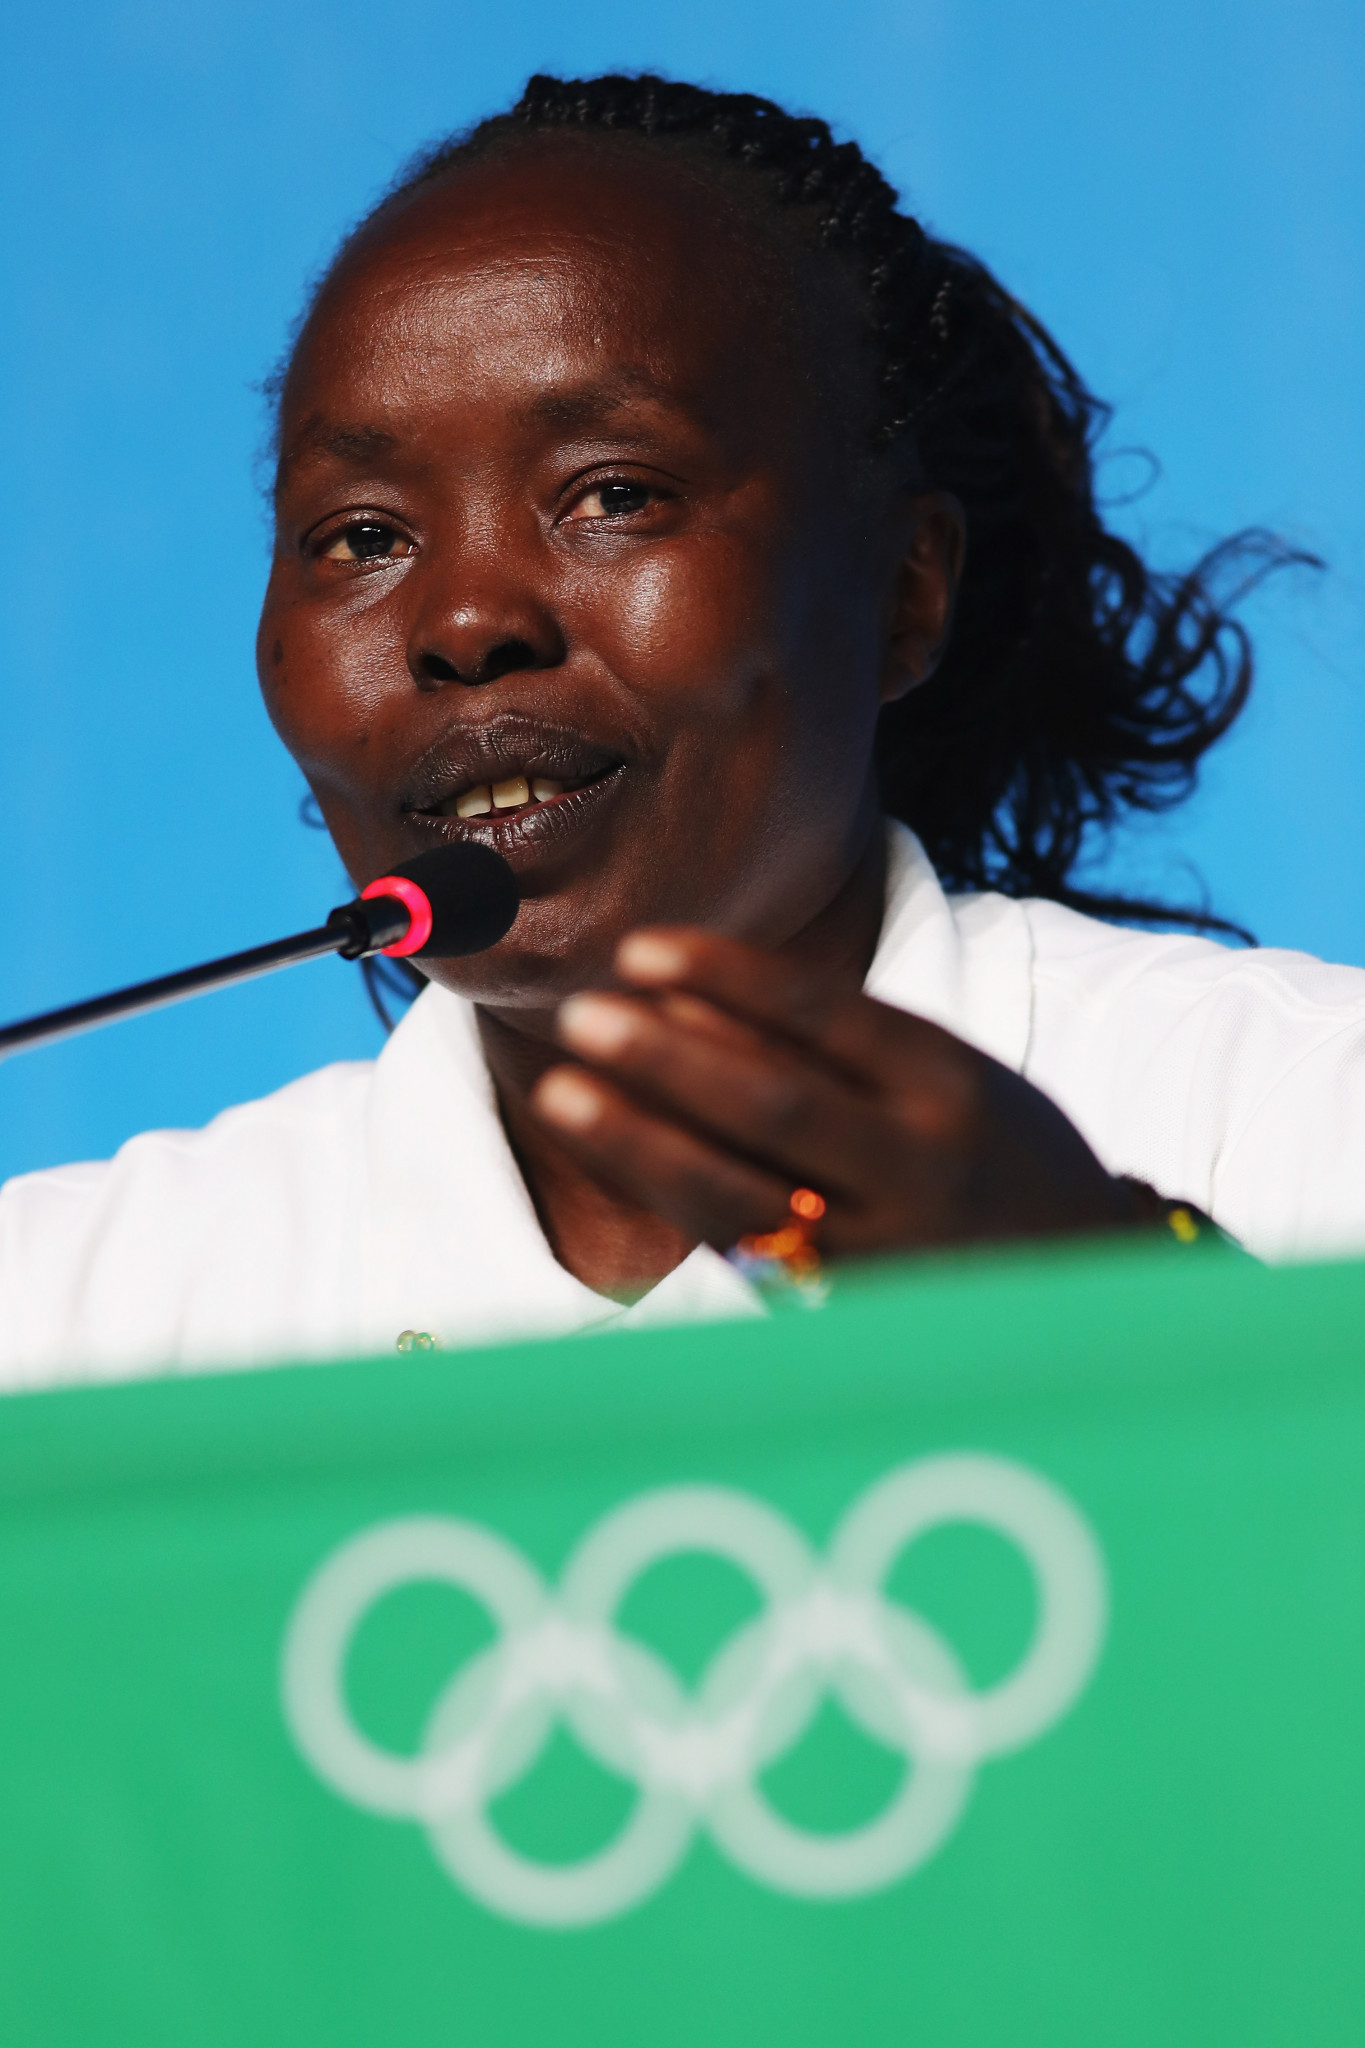 Kenya's former world marathon record holder Tegla Loropue will be Chef de Mission for the Refugee Olympic Team at Tokyo 2020, a role she also carried out at Rio 2016 ©Getty Images